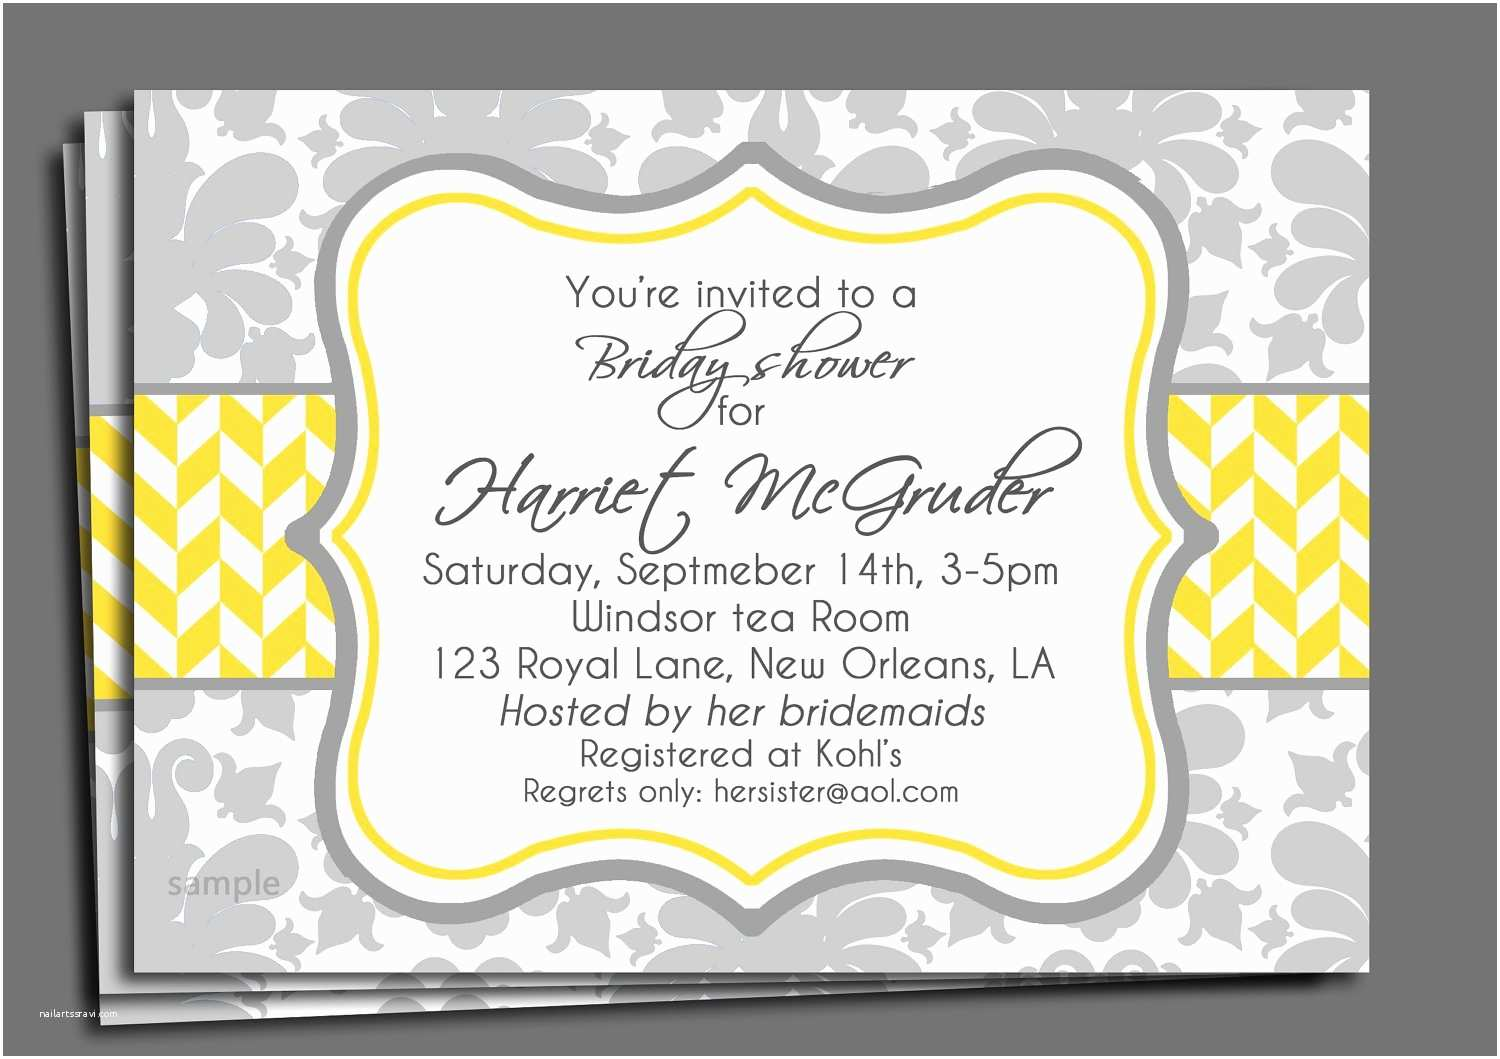 Invitation Wording for Adults Only Party Wording for Birthday Invitations for Adults